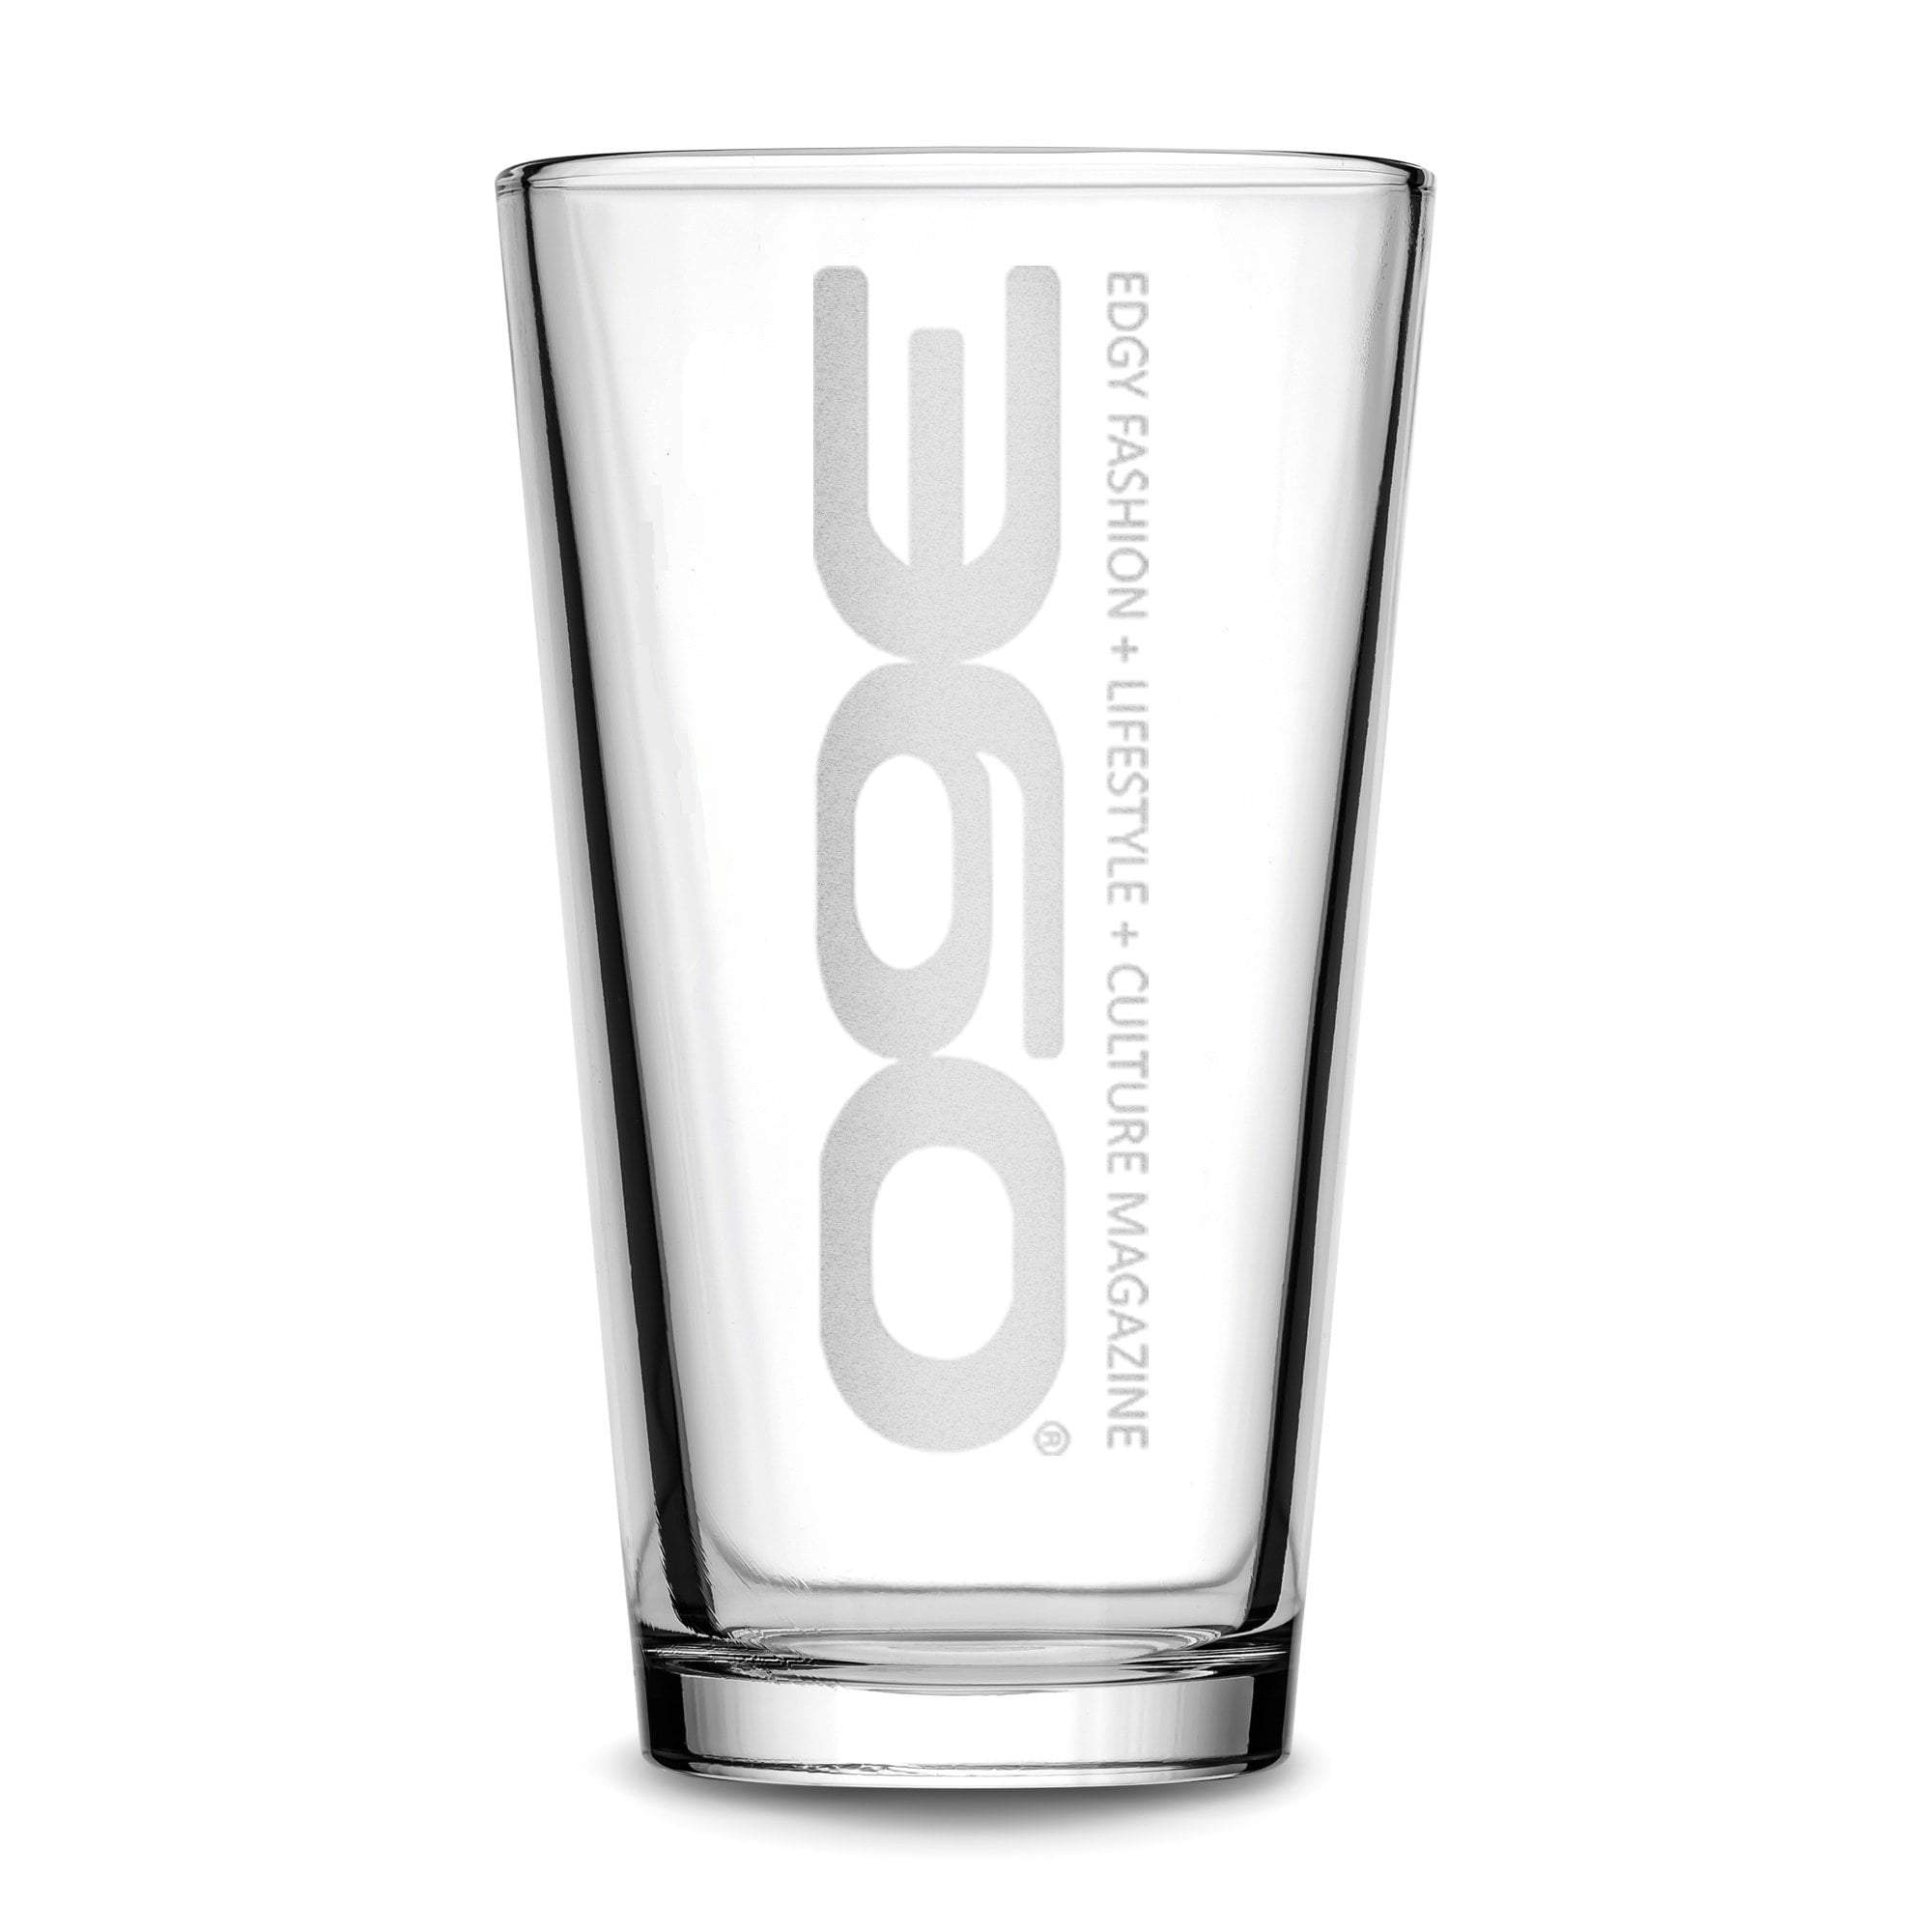 360 Magazine Pint Glass, Beer Glass, 16oz Integrity Bottles